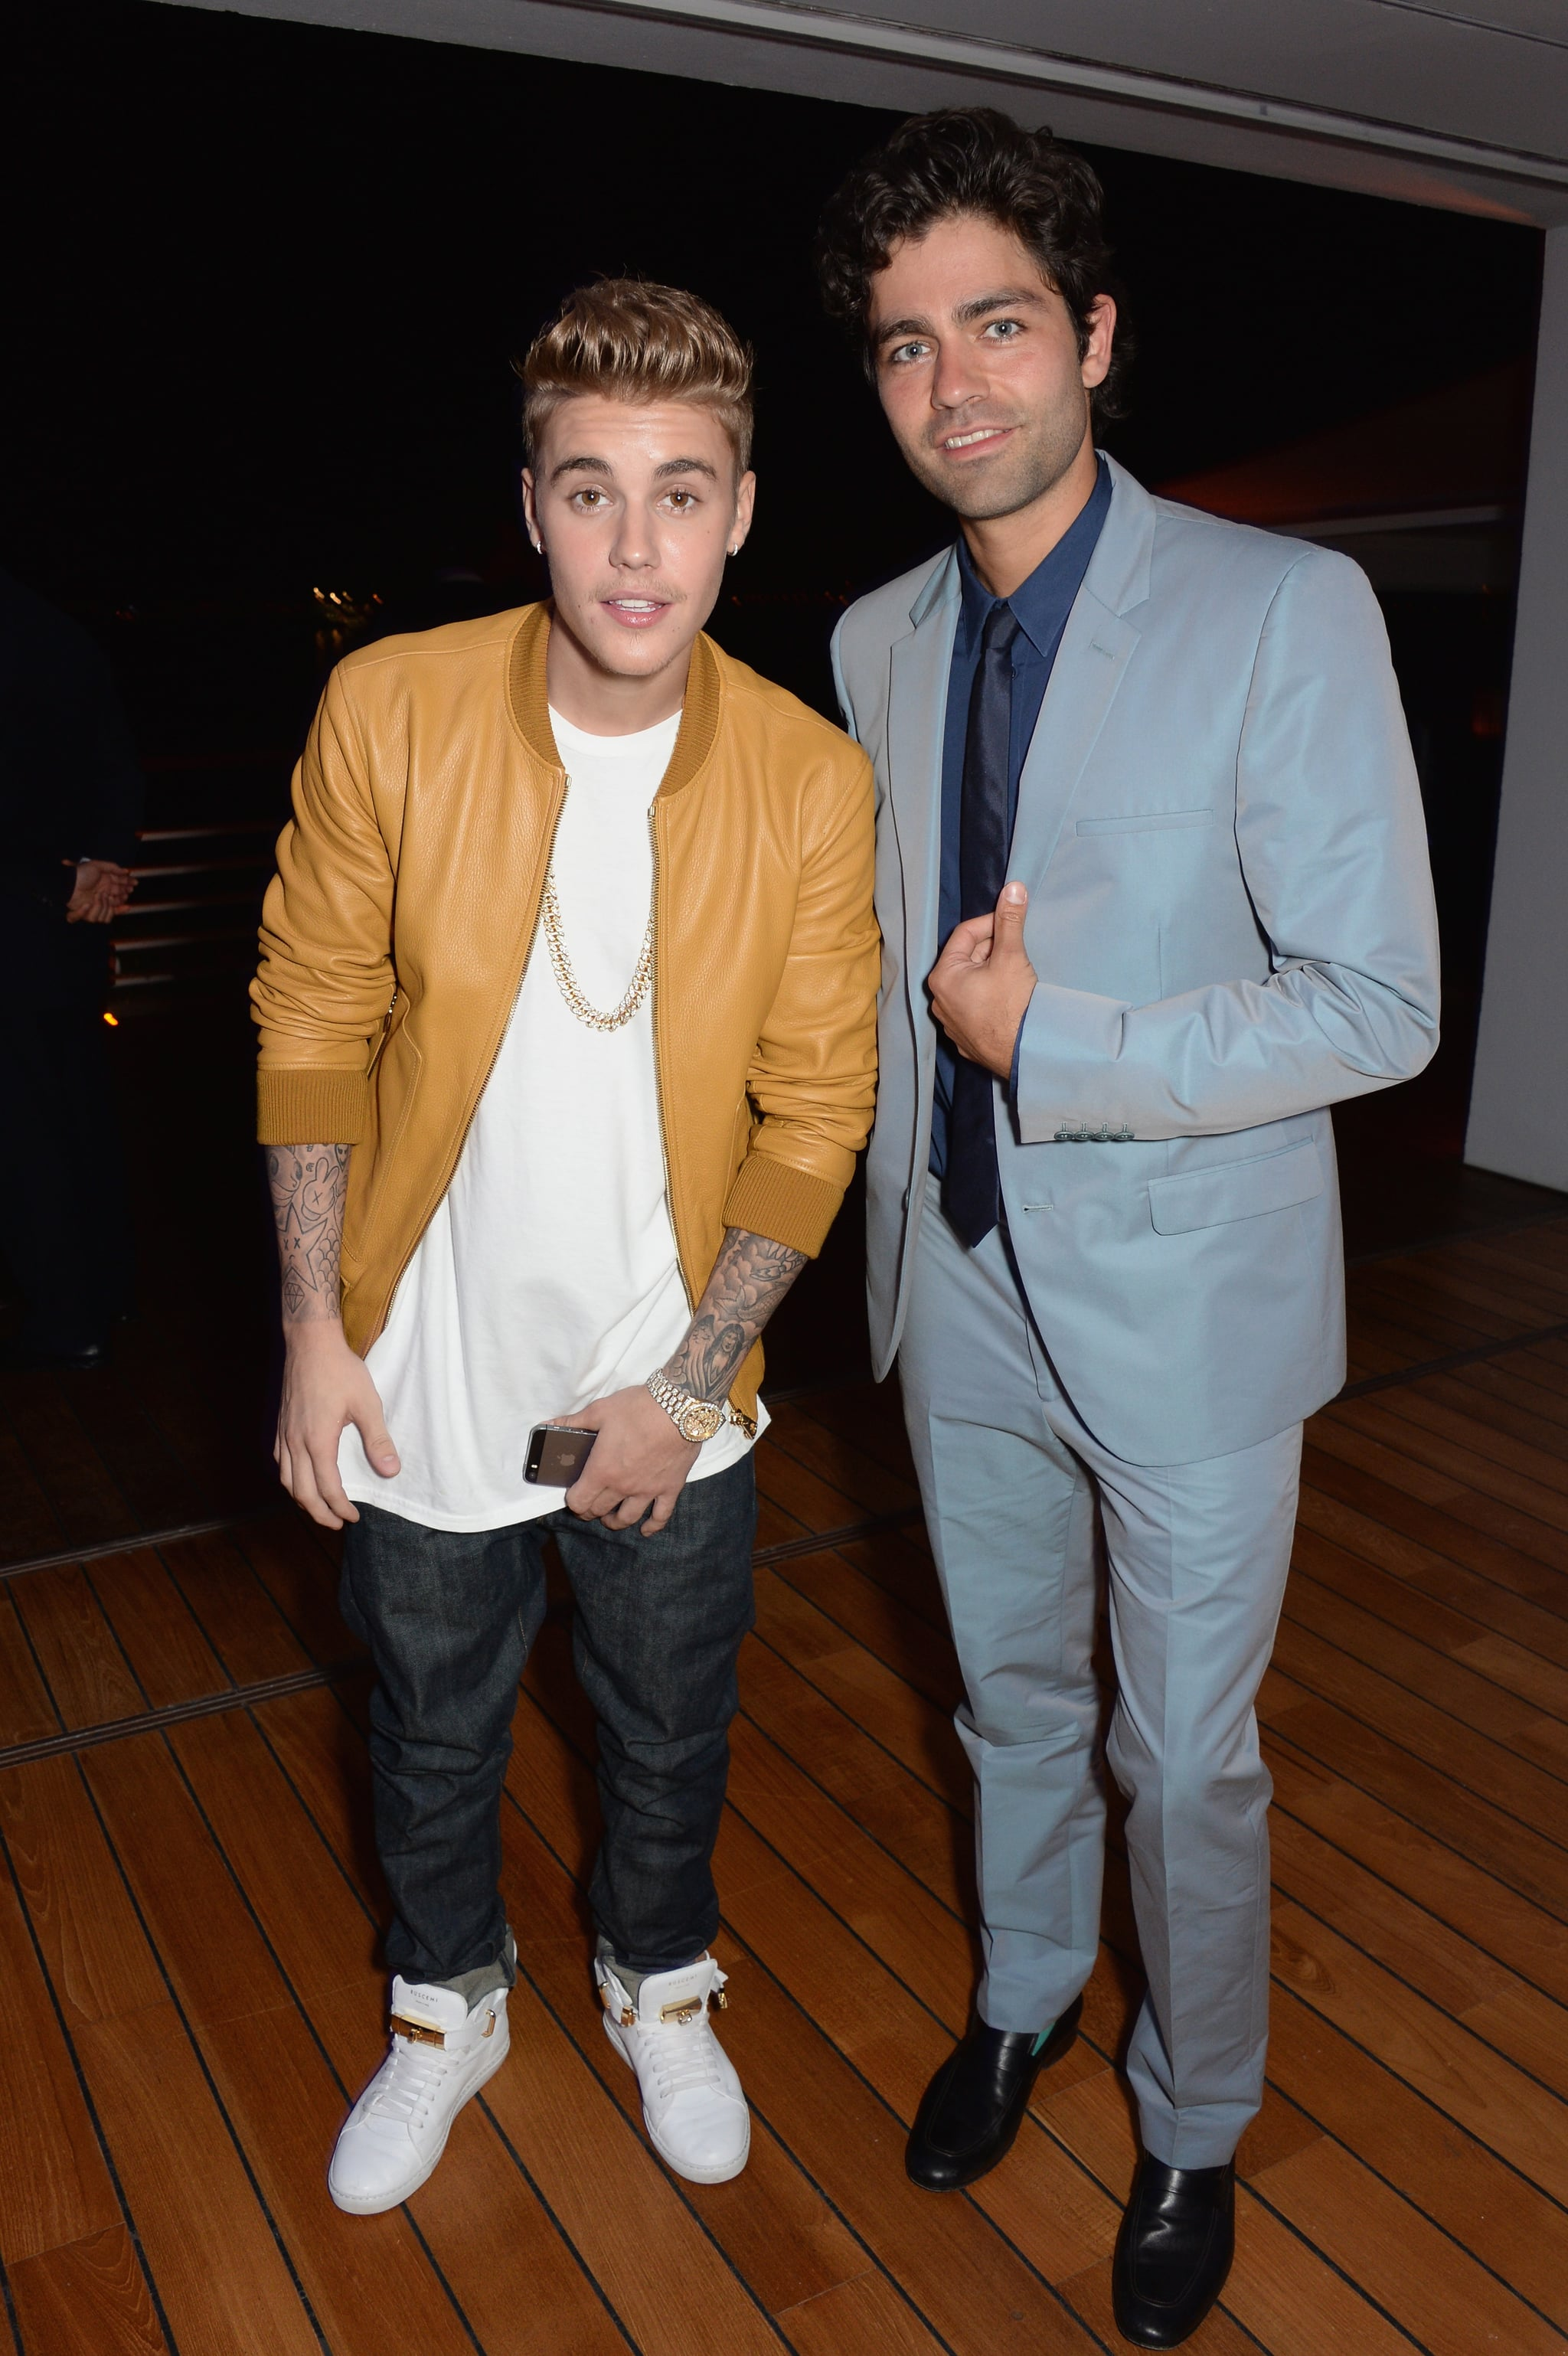 Justin Bieber and Adrian Grenier met up at the bash.